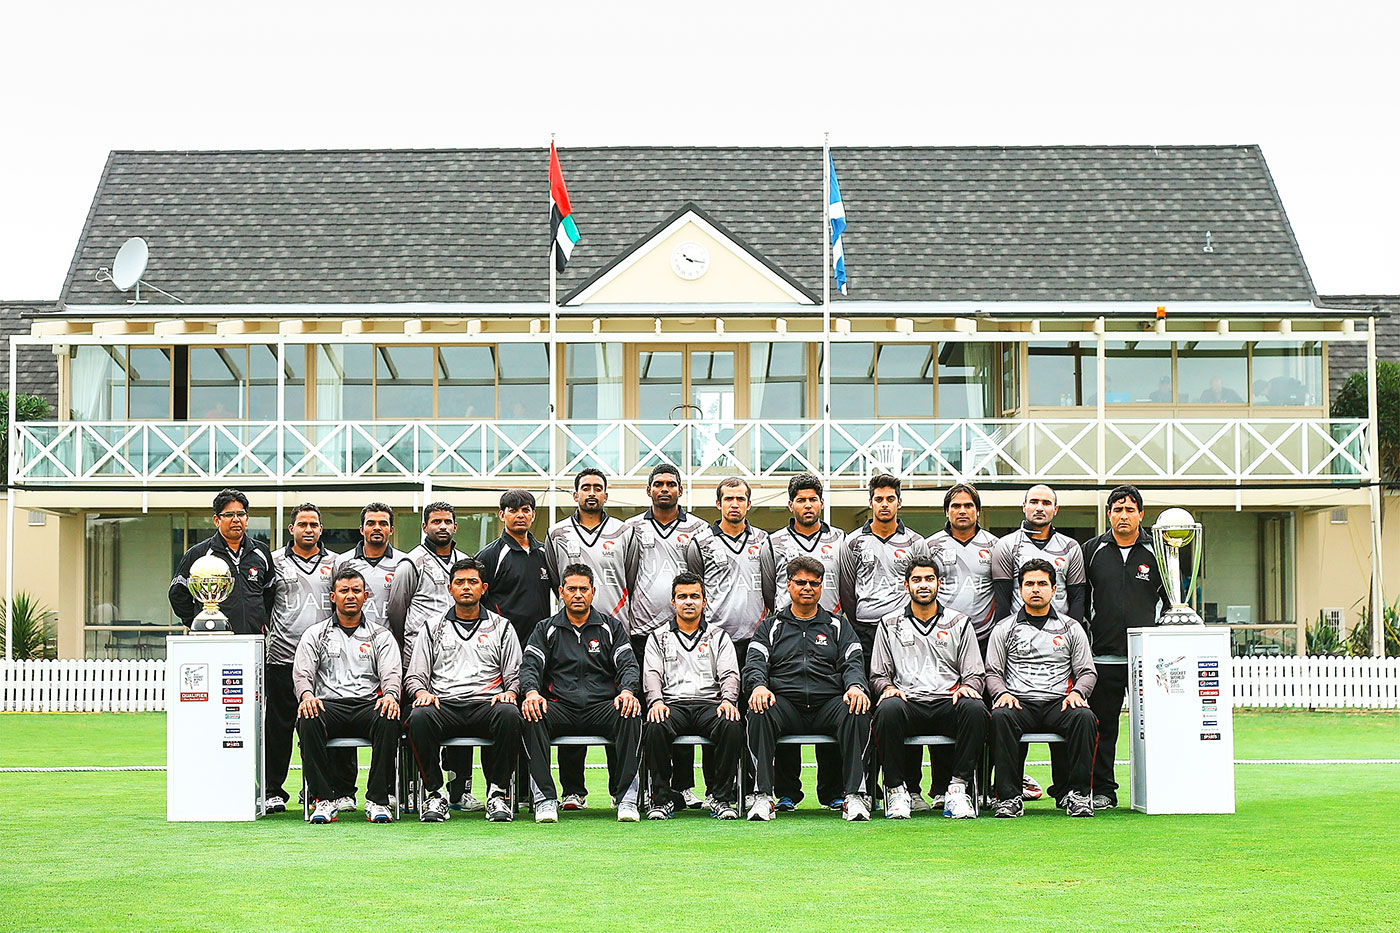 Kiwi summer: UAE finished runners-up to Scotland in the World Cup Qualifier in New Zealand in 2014